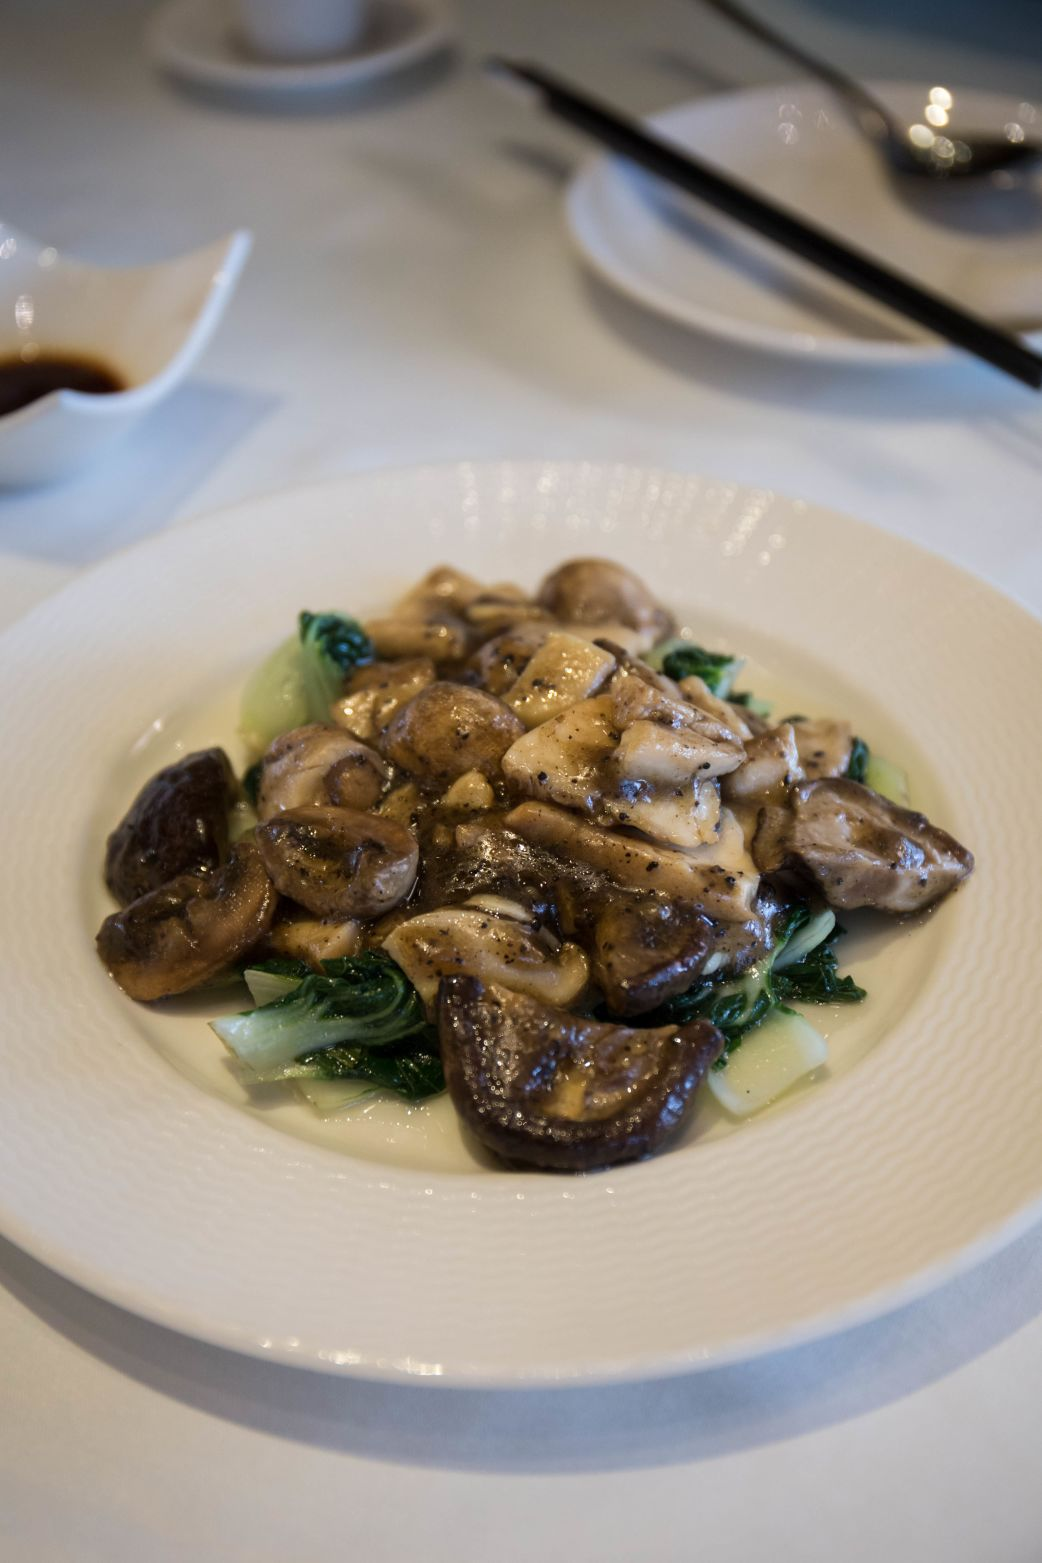 Stir-fried Mushrooms